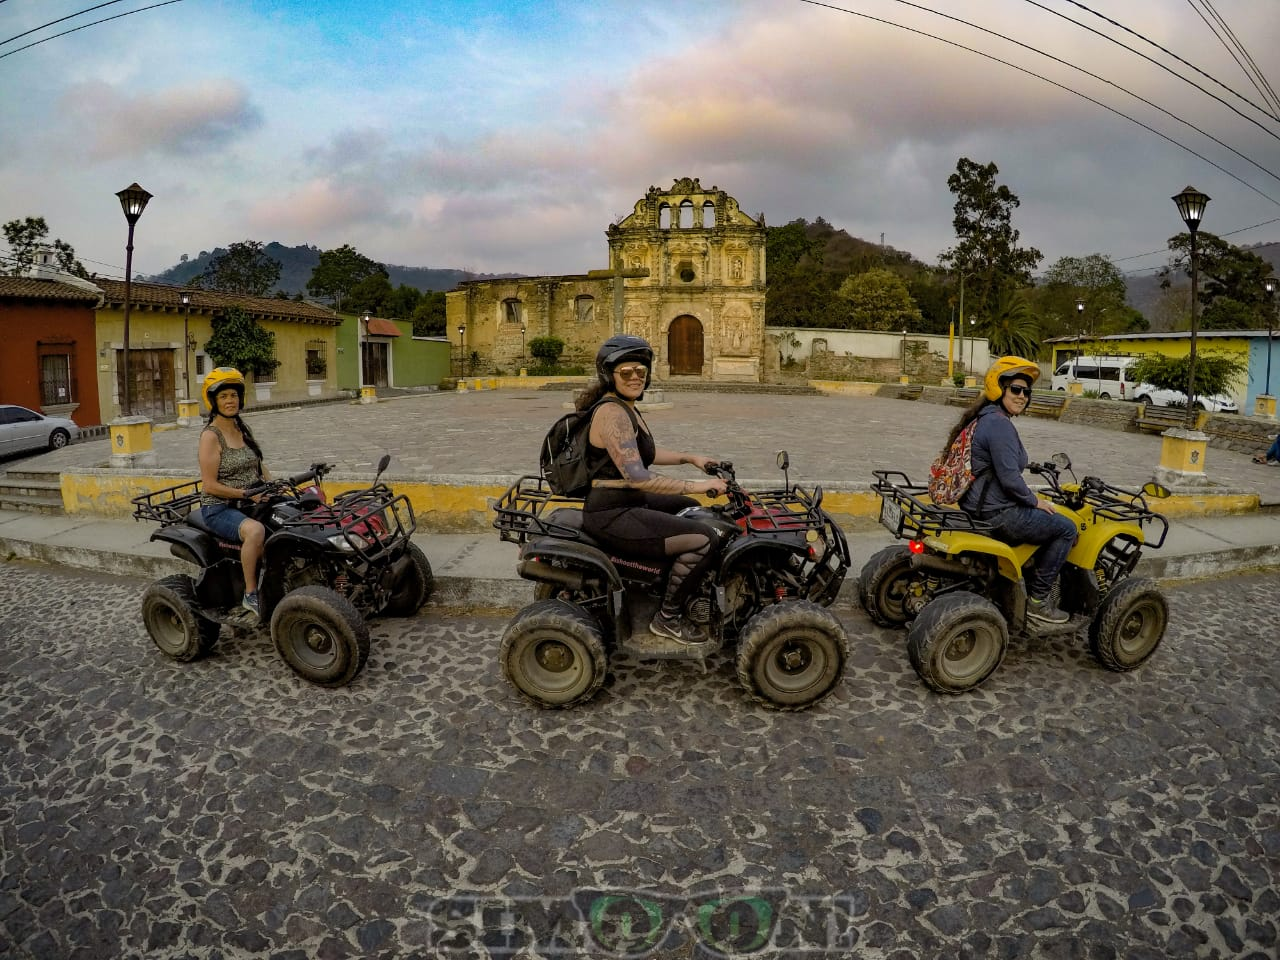 Riding along the streets of Antigua